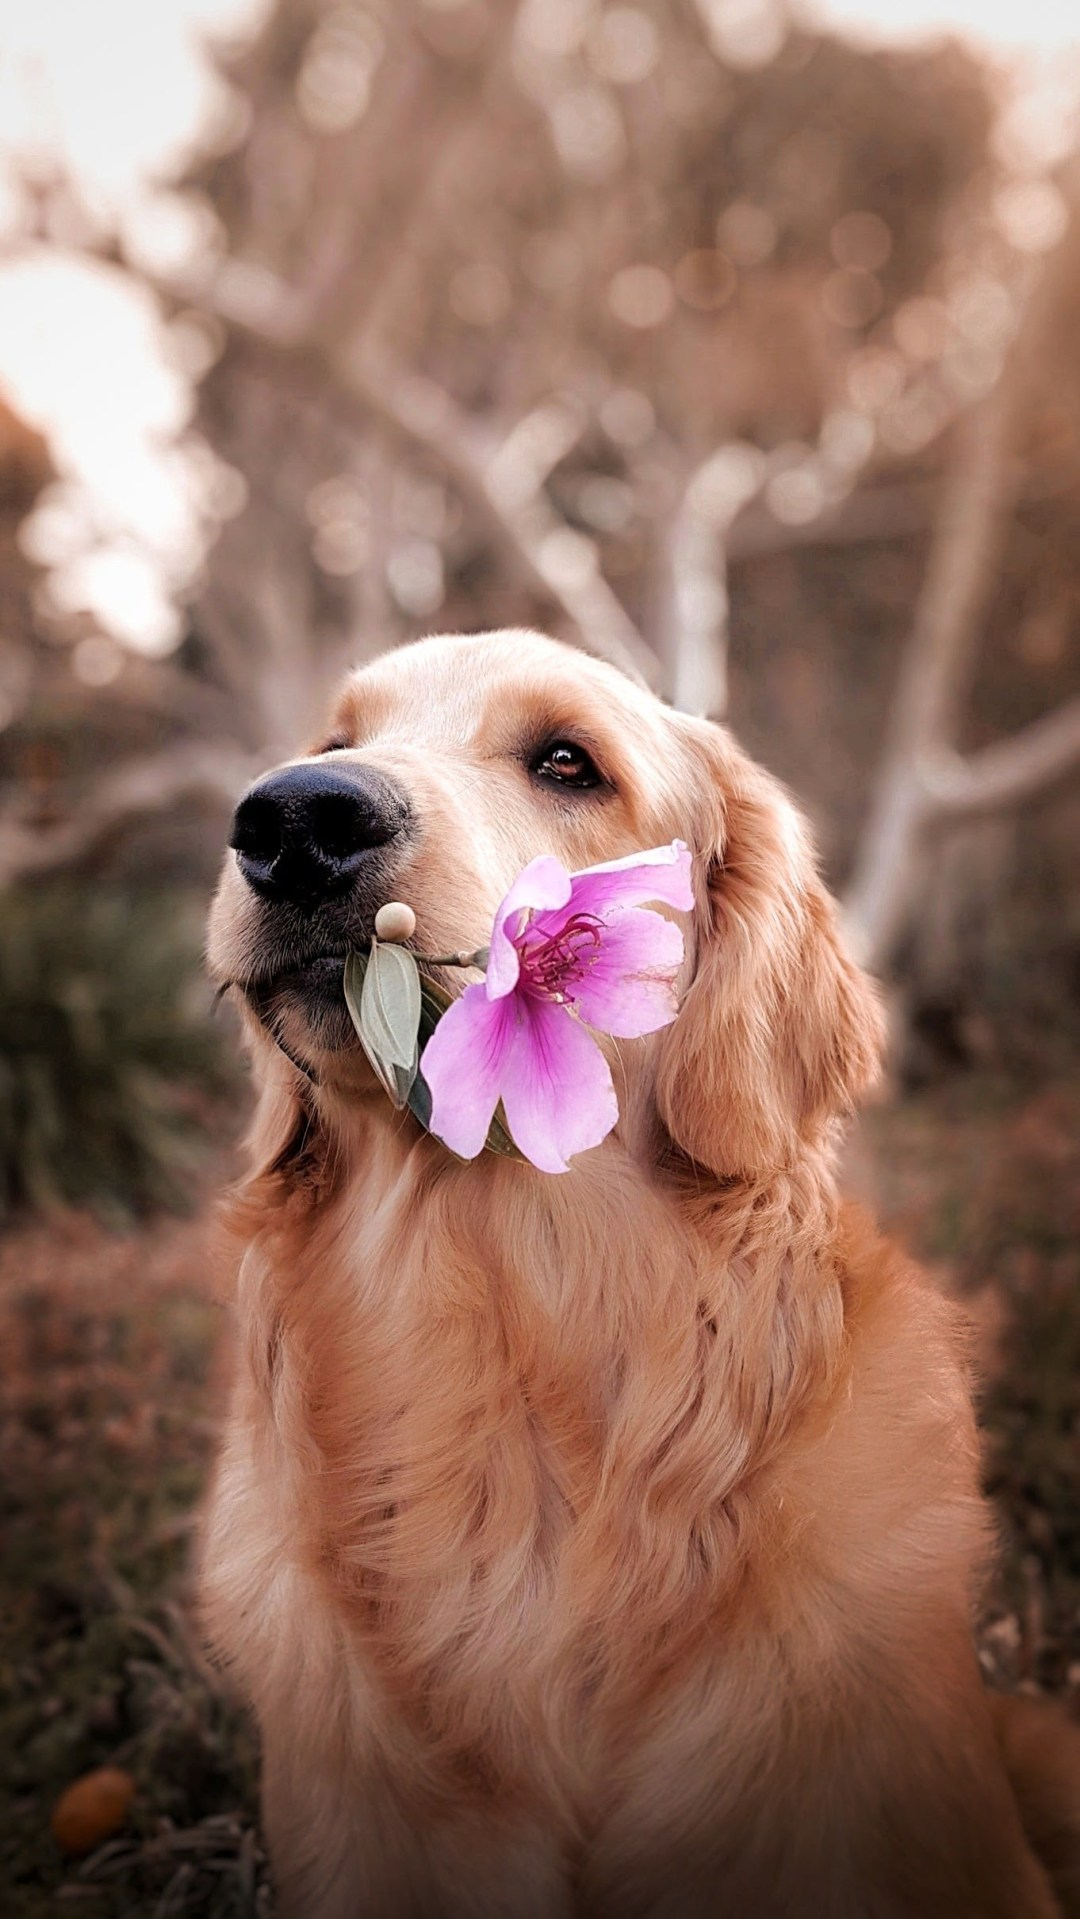 Cute Cute Hd Wallpapers Dog Holding Flower Photo Free Dog Image On Unsplash